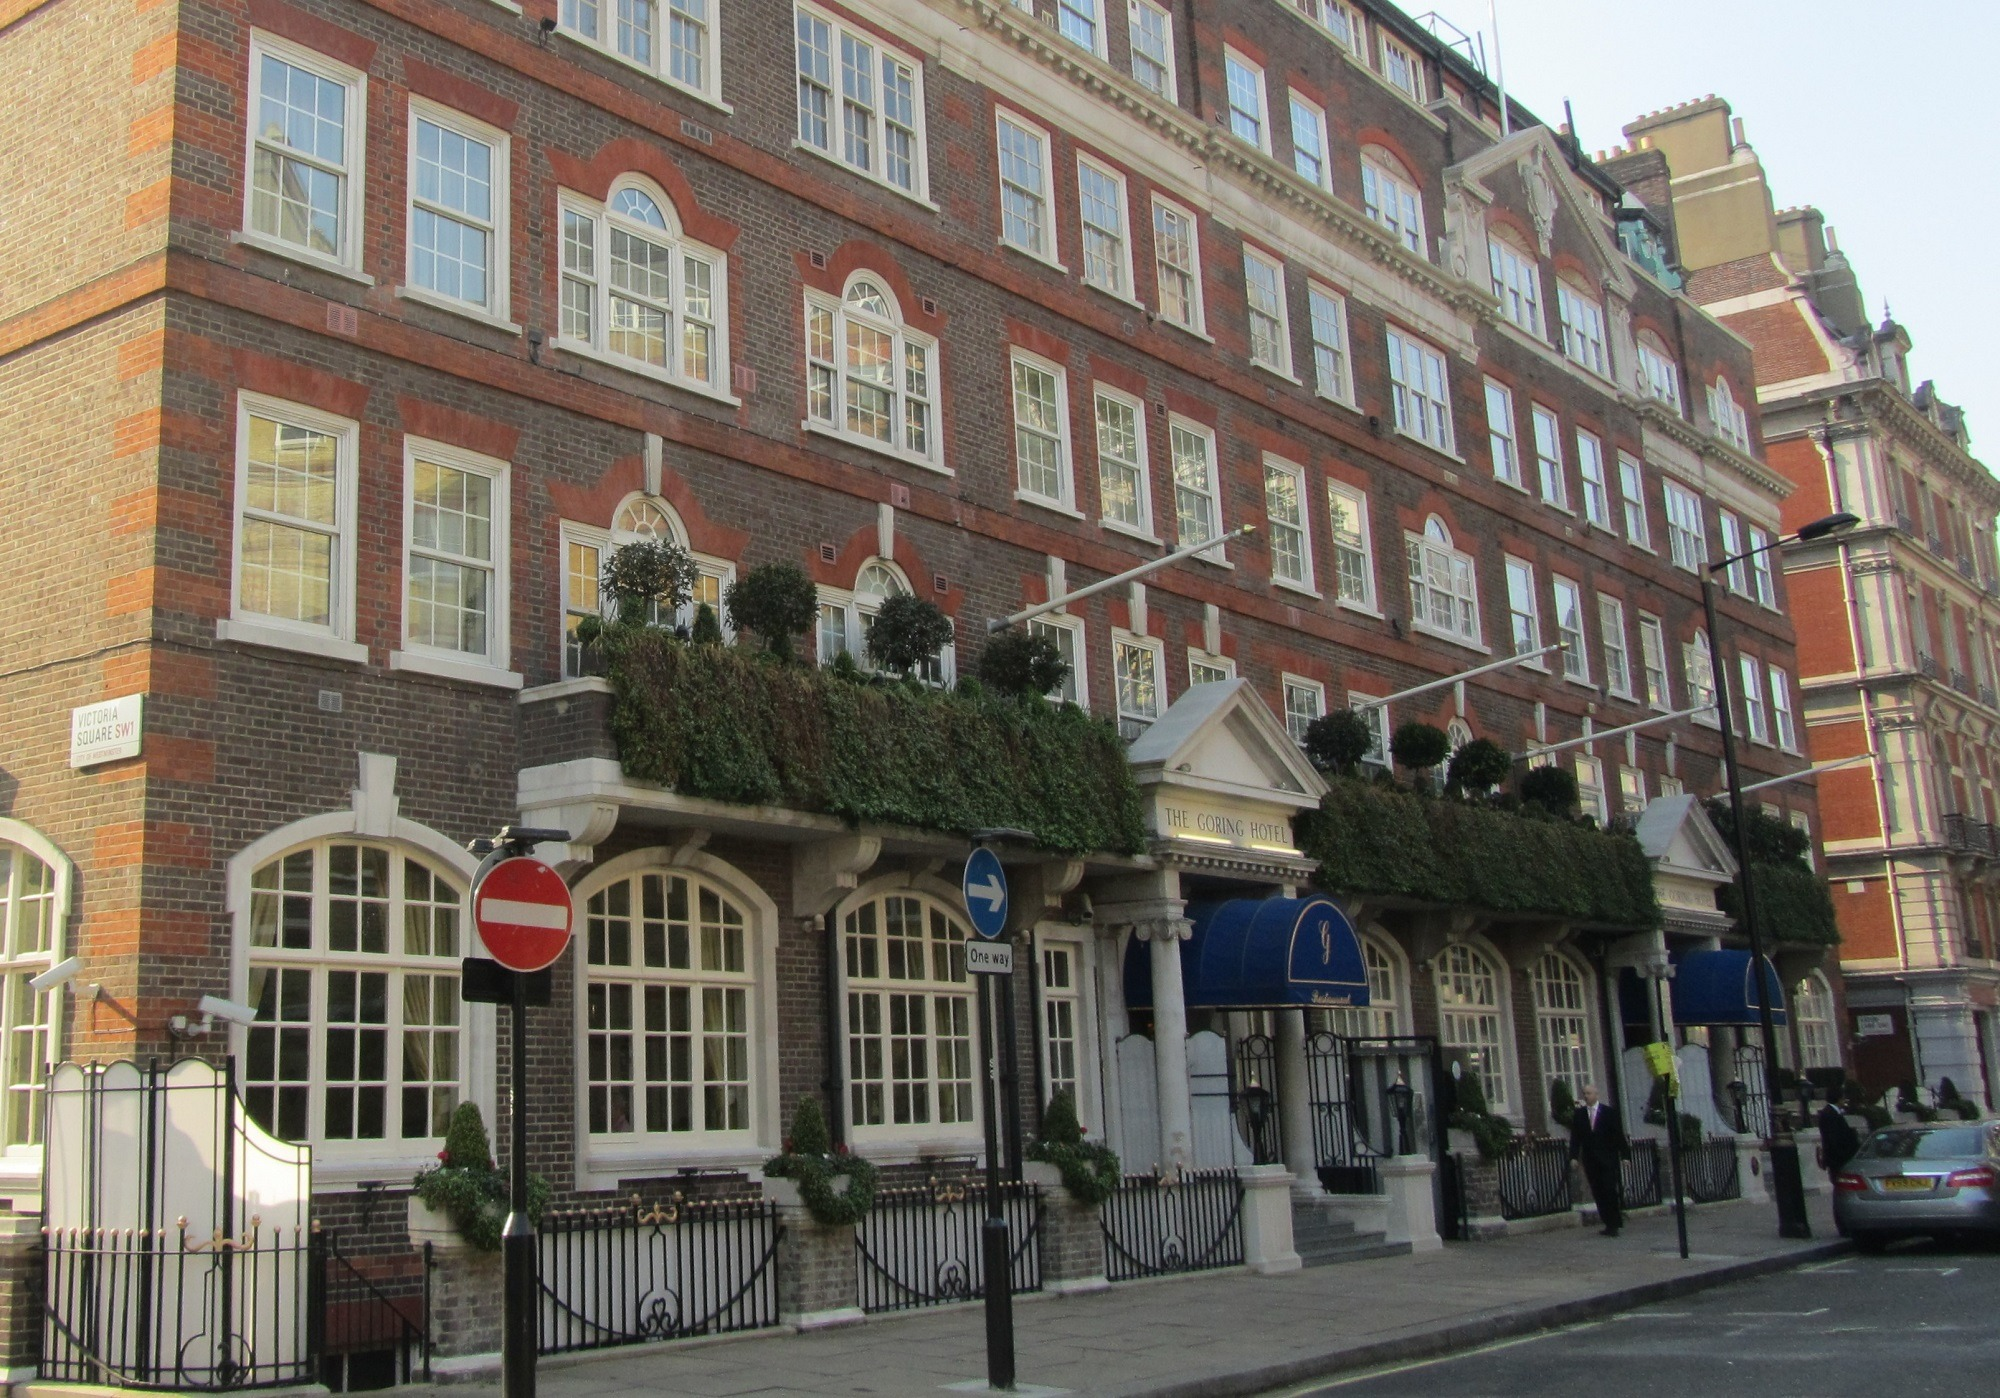 The Goring Hotel facade cleaning